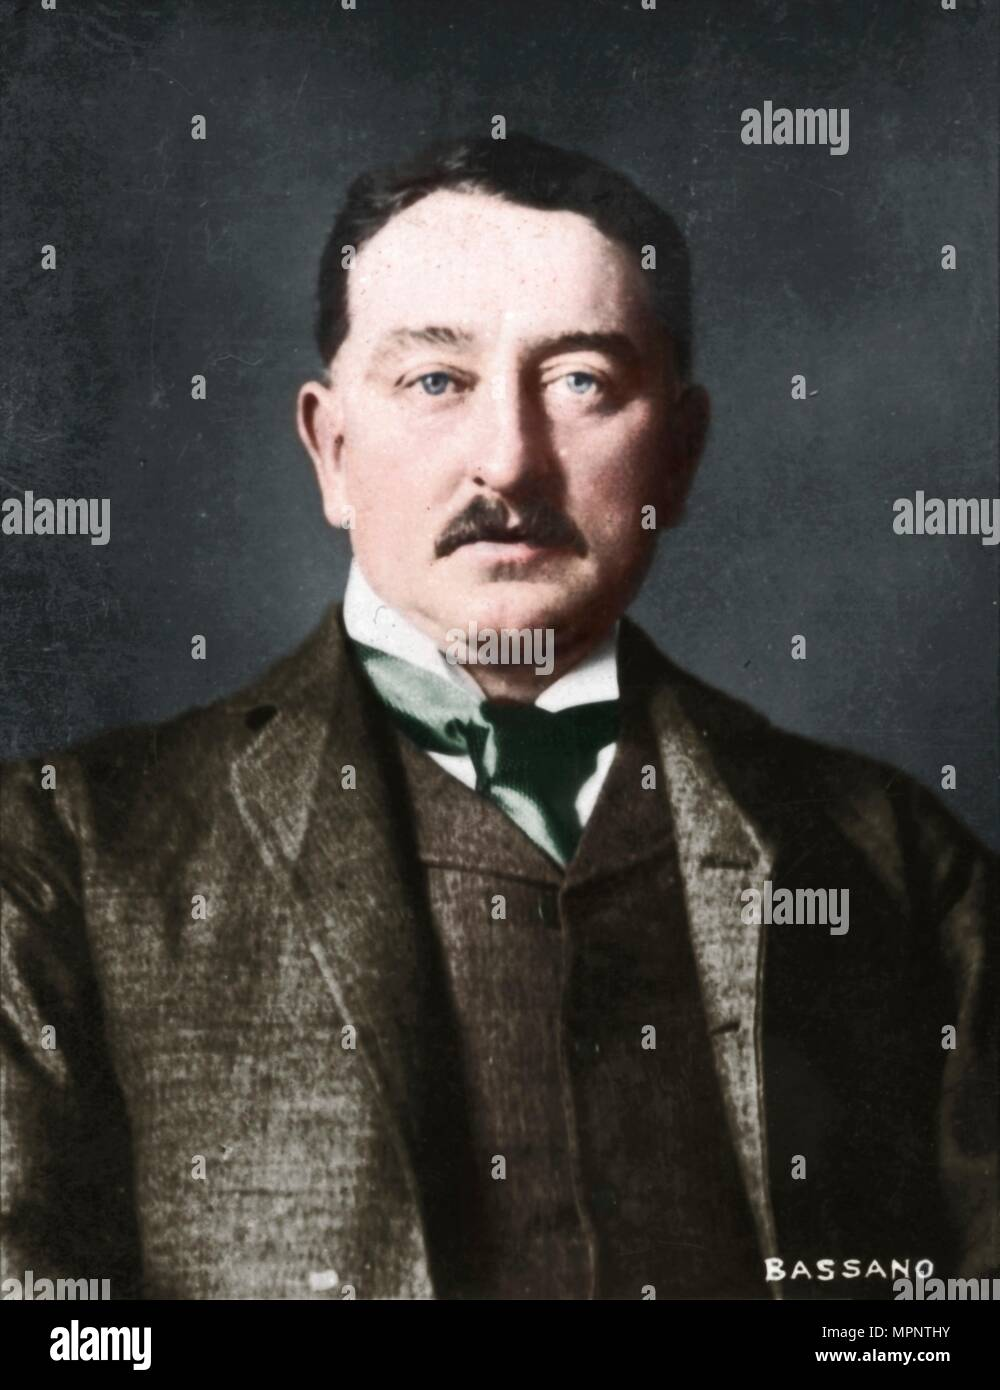 'Cecil Rhodes', (1853-1902), English-born South African entrepreneur and statesman, 1894-1907. Artist: Alexander Bassano. - Stock Image